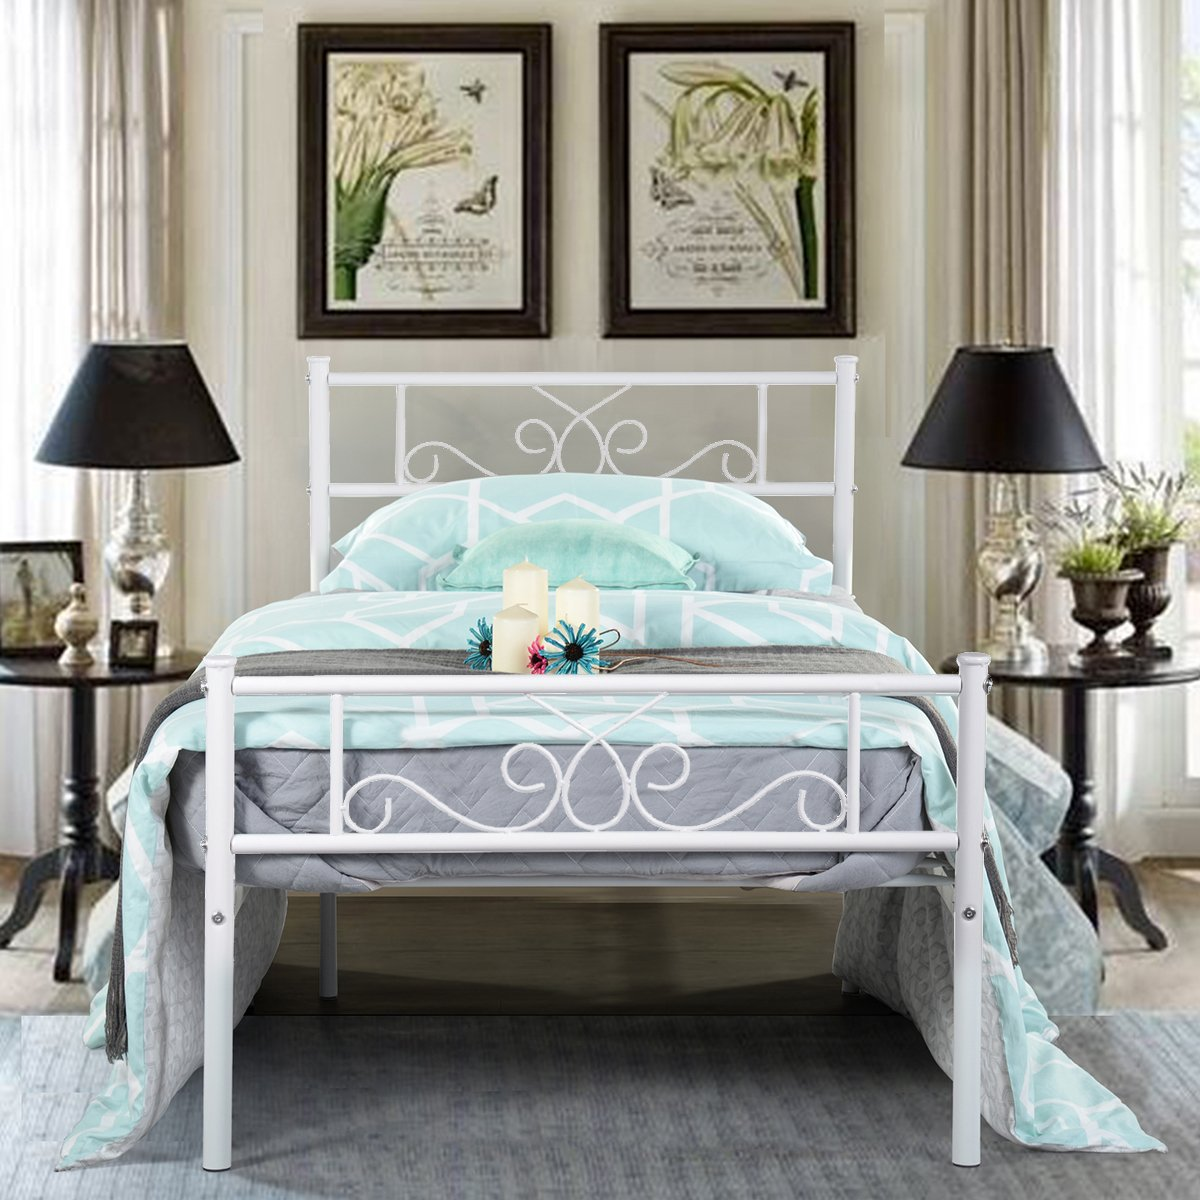 White Metal Twin Bed Fit For a Princess